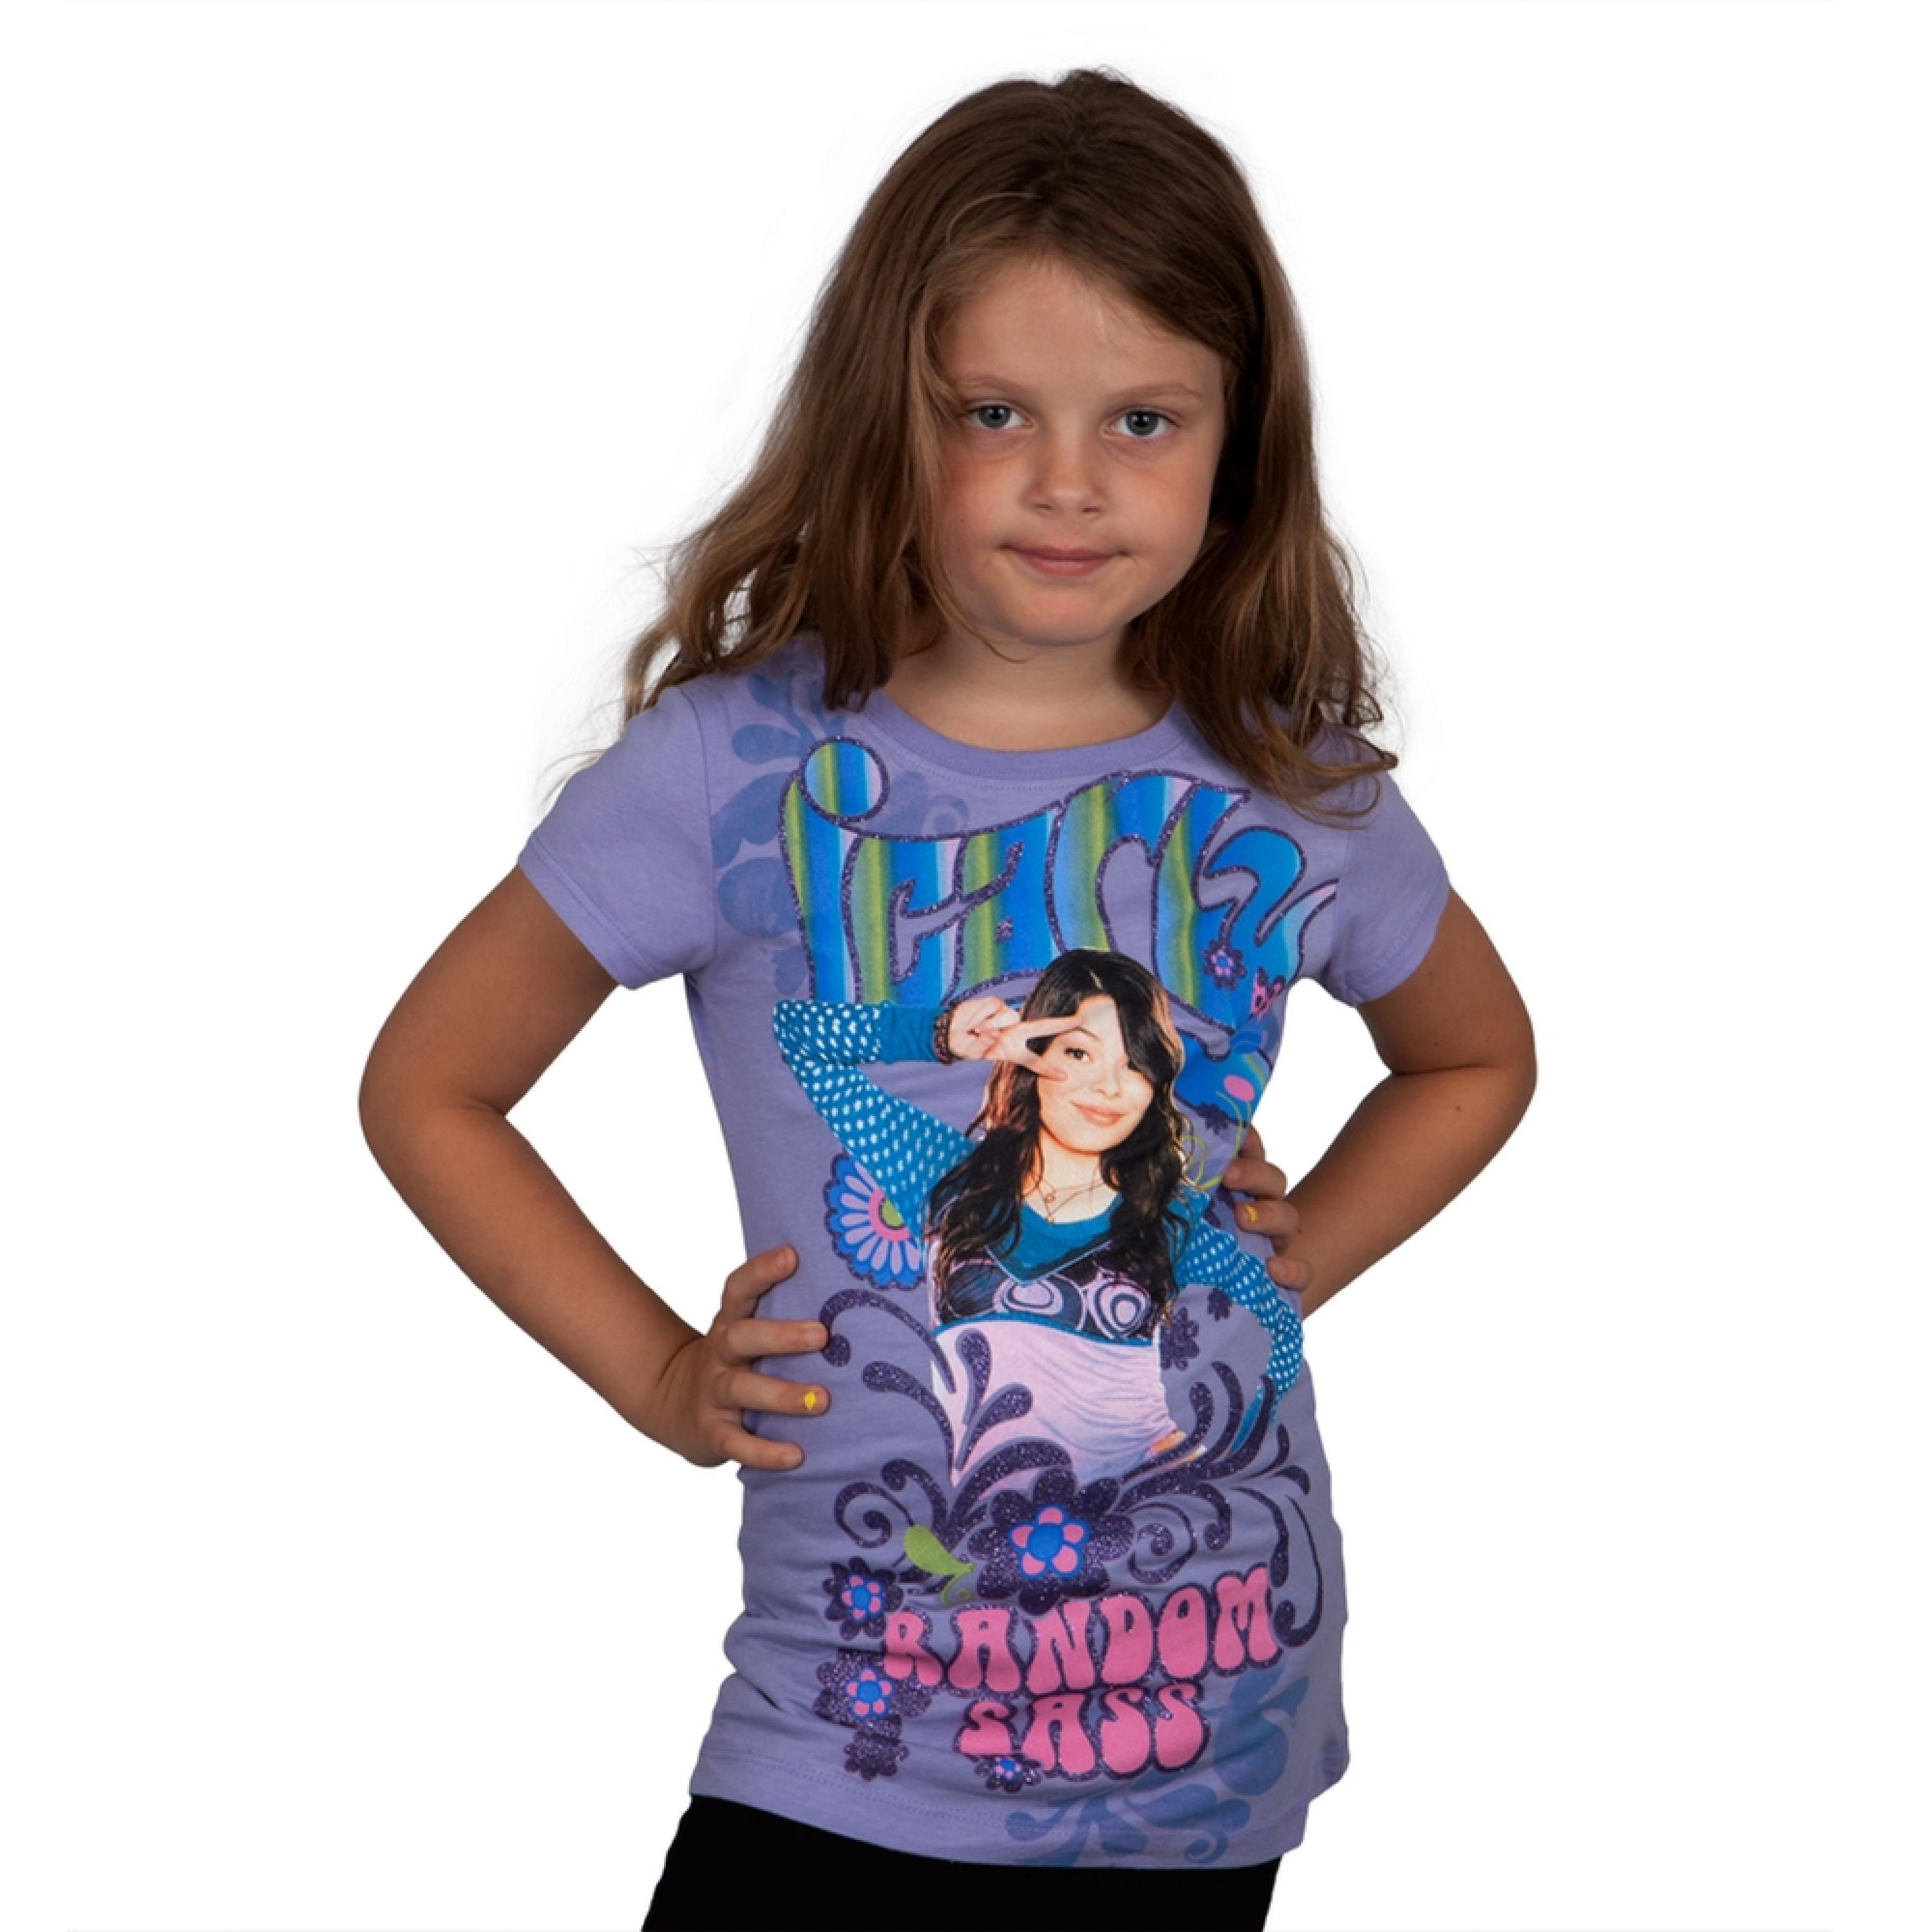 iCarly - Random Sass Girls Youth T-Shirt